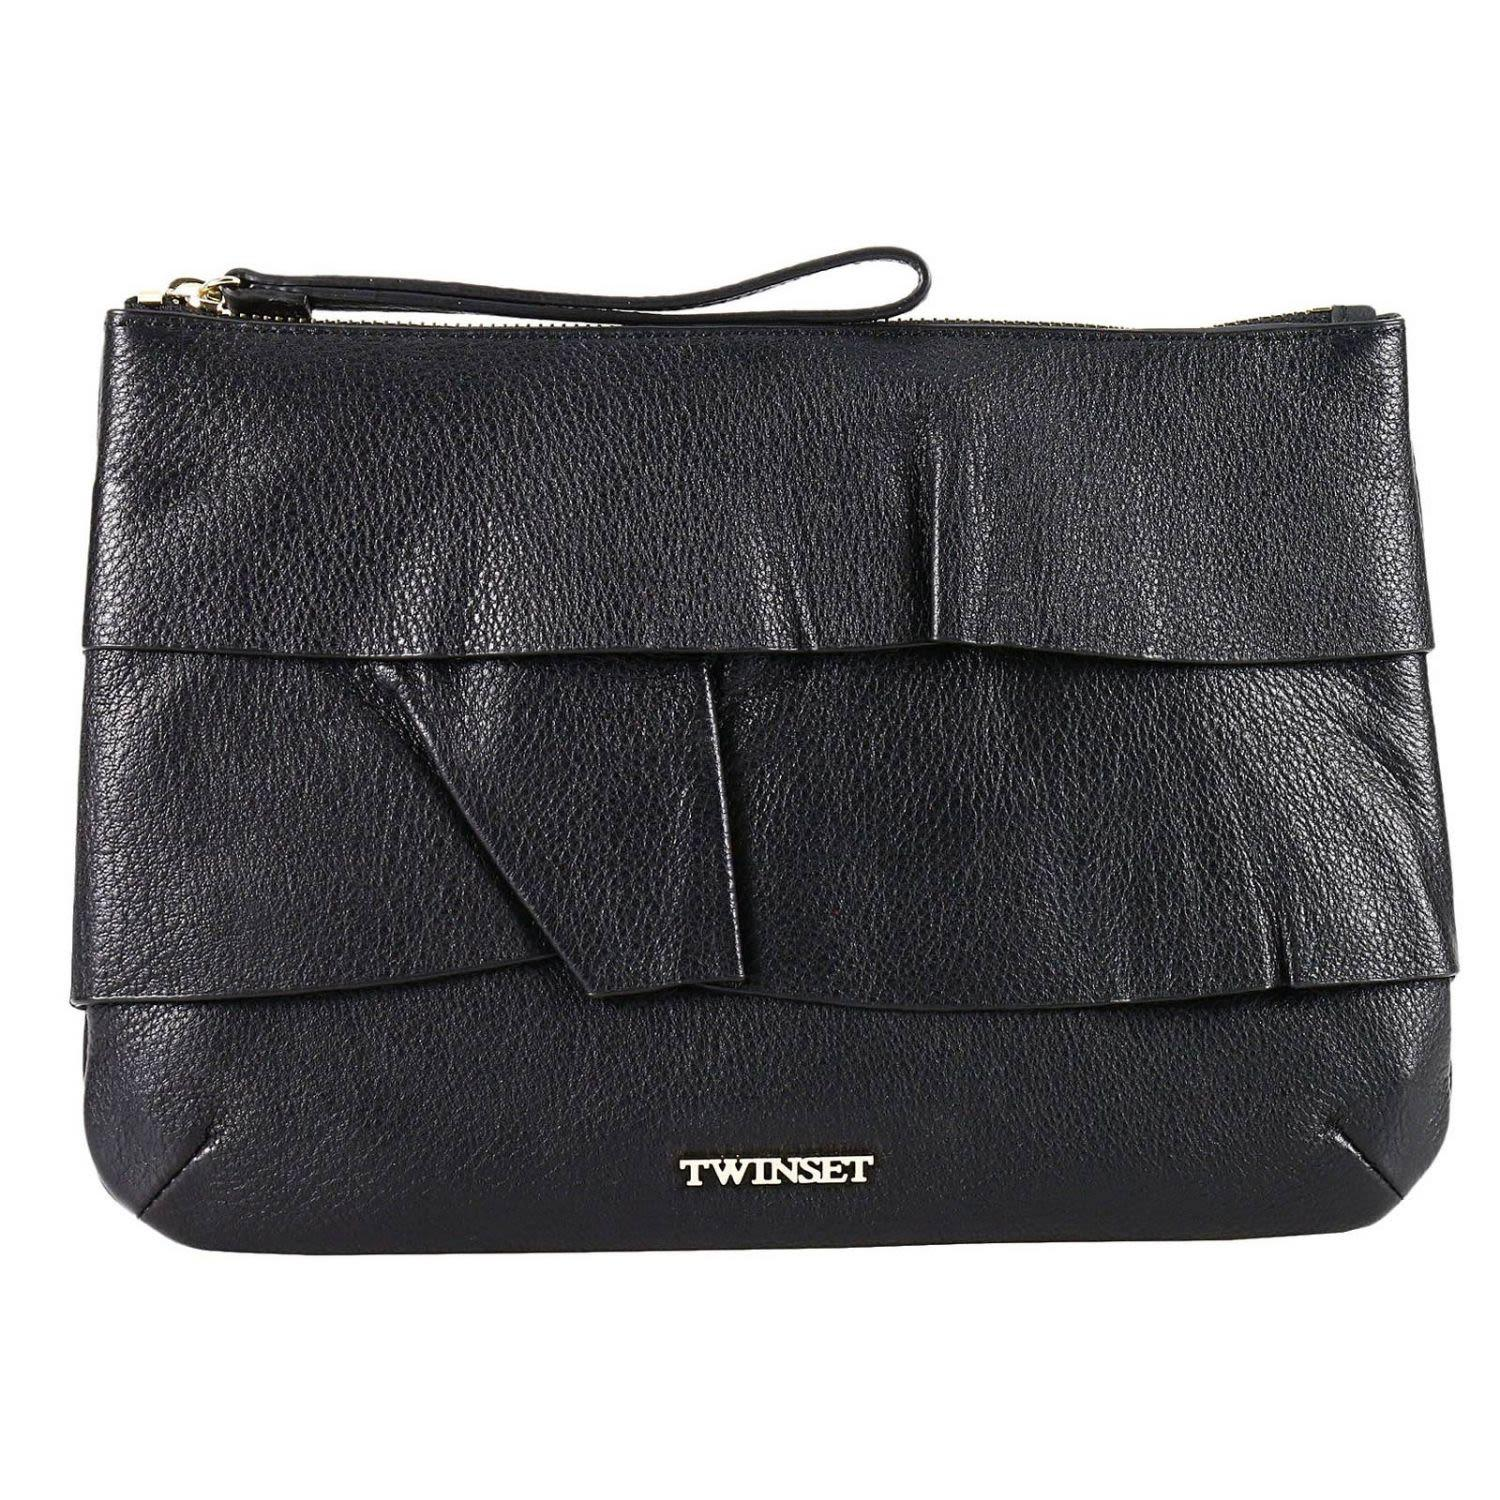 Twinset Clutch Shoulder Bag Women Twin Set In Black